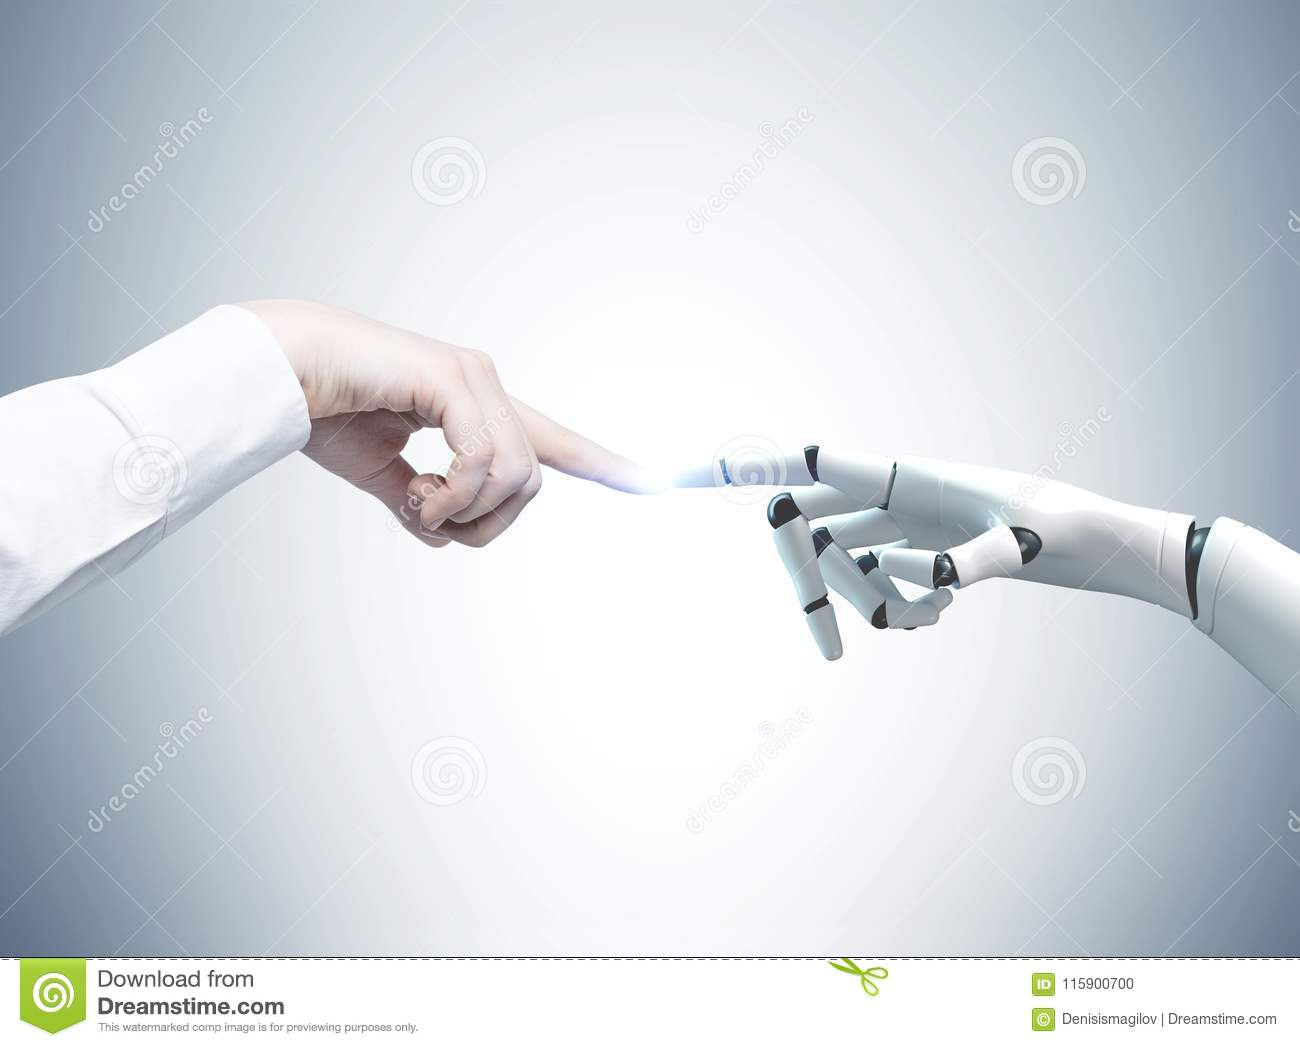 Human and robot hands reaching out, gray